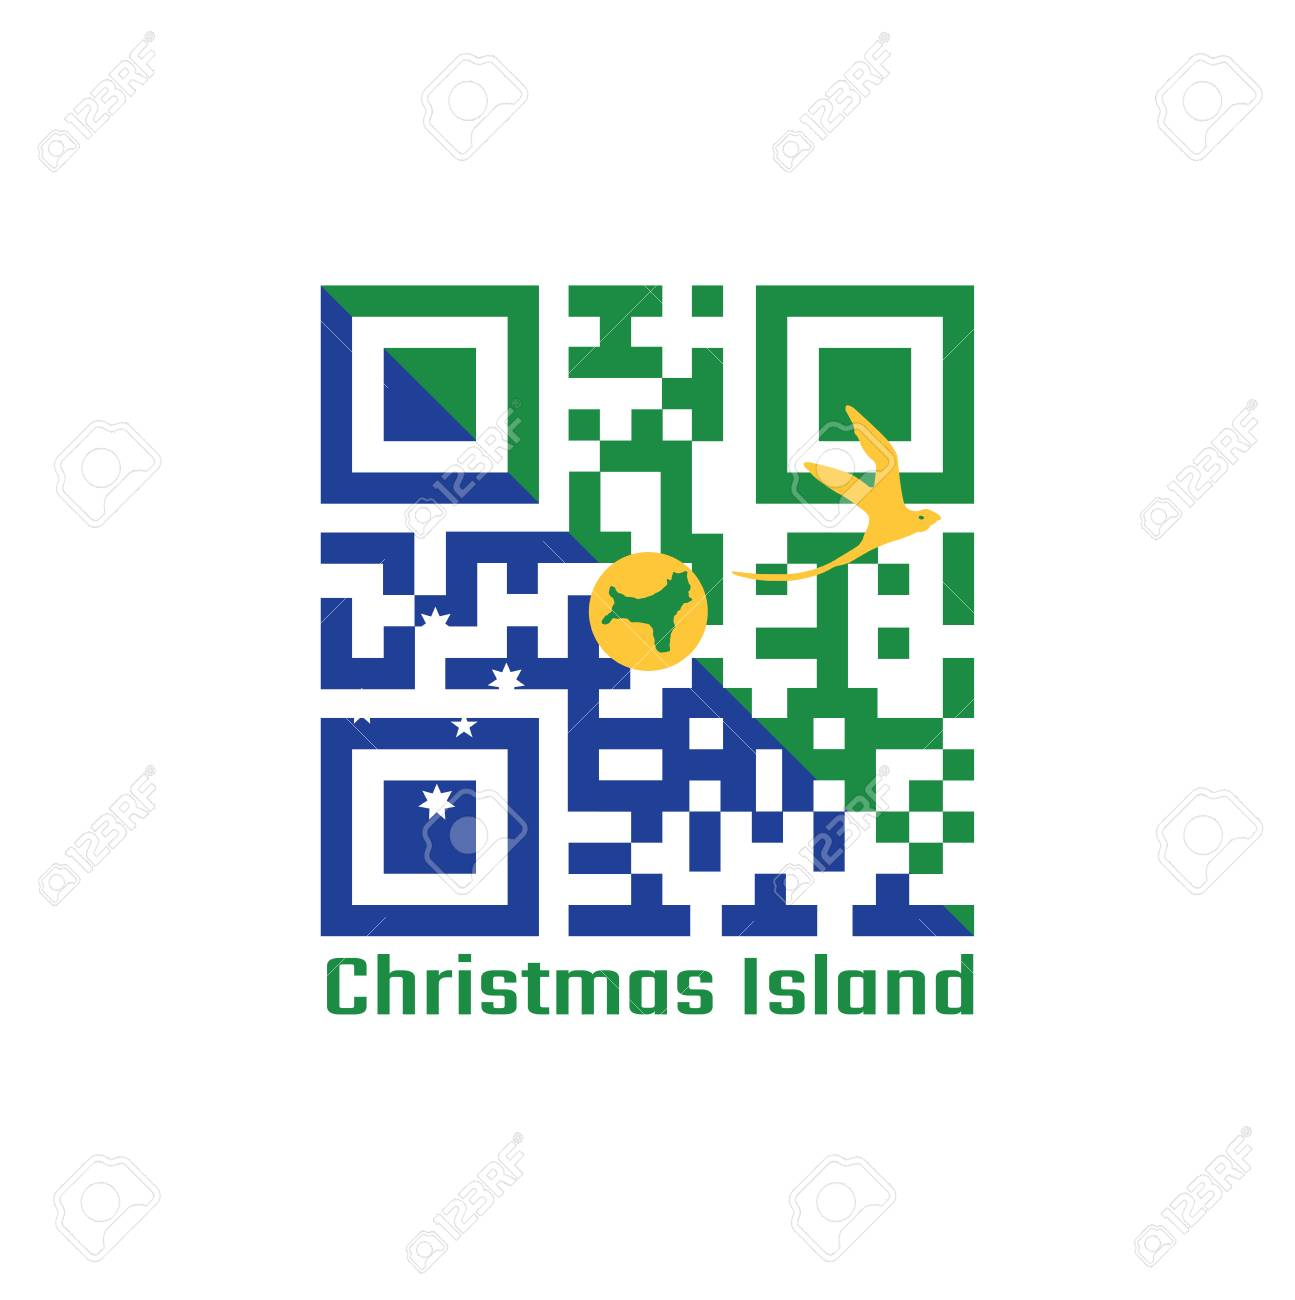 Christmas Island Flag.Qr Code Set The Color Of Christmas Island Flag Blue And Green